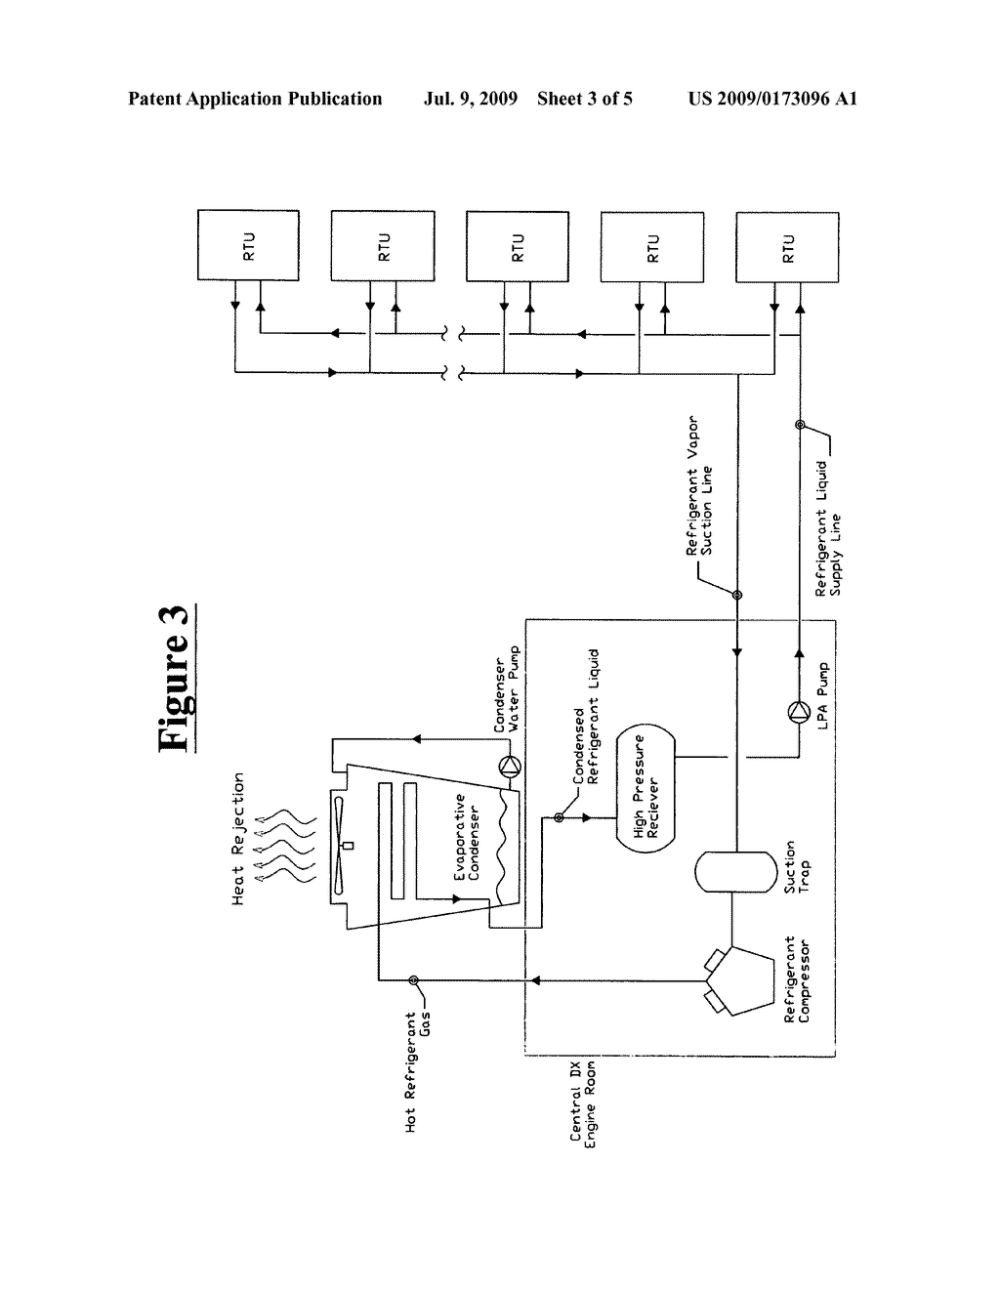 medium resolution of methodology for converting existing packaged rooftop air conditioning units to be served from a centralized water cooled refrigeration and or heat pump